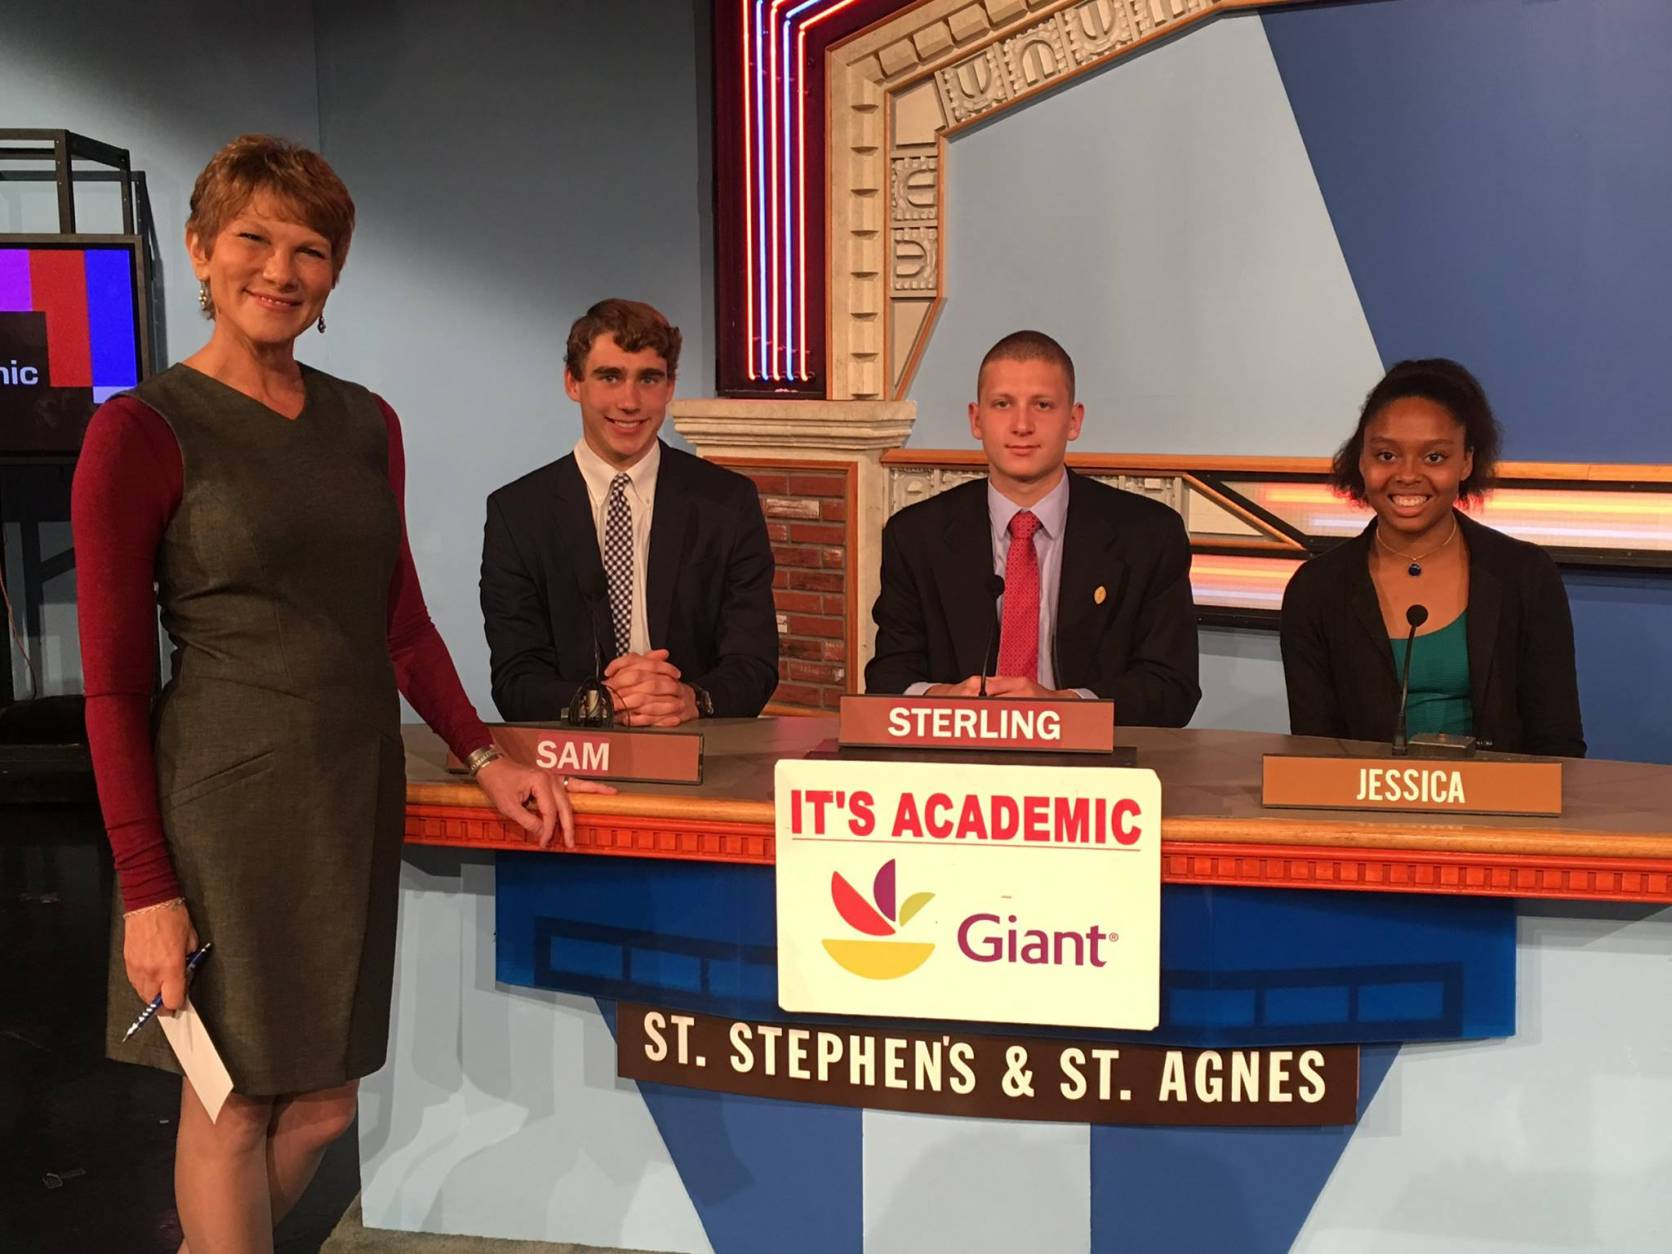 St. Stephen's and St. Agnes compete against Washington-Lee High School and W.T. Woodson High School. The show airs Dec. 10, 2016. (Courtesy Facebook/It's Academic)